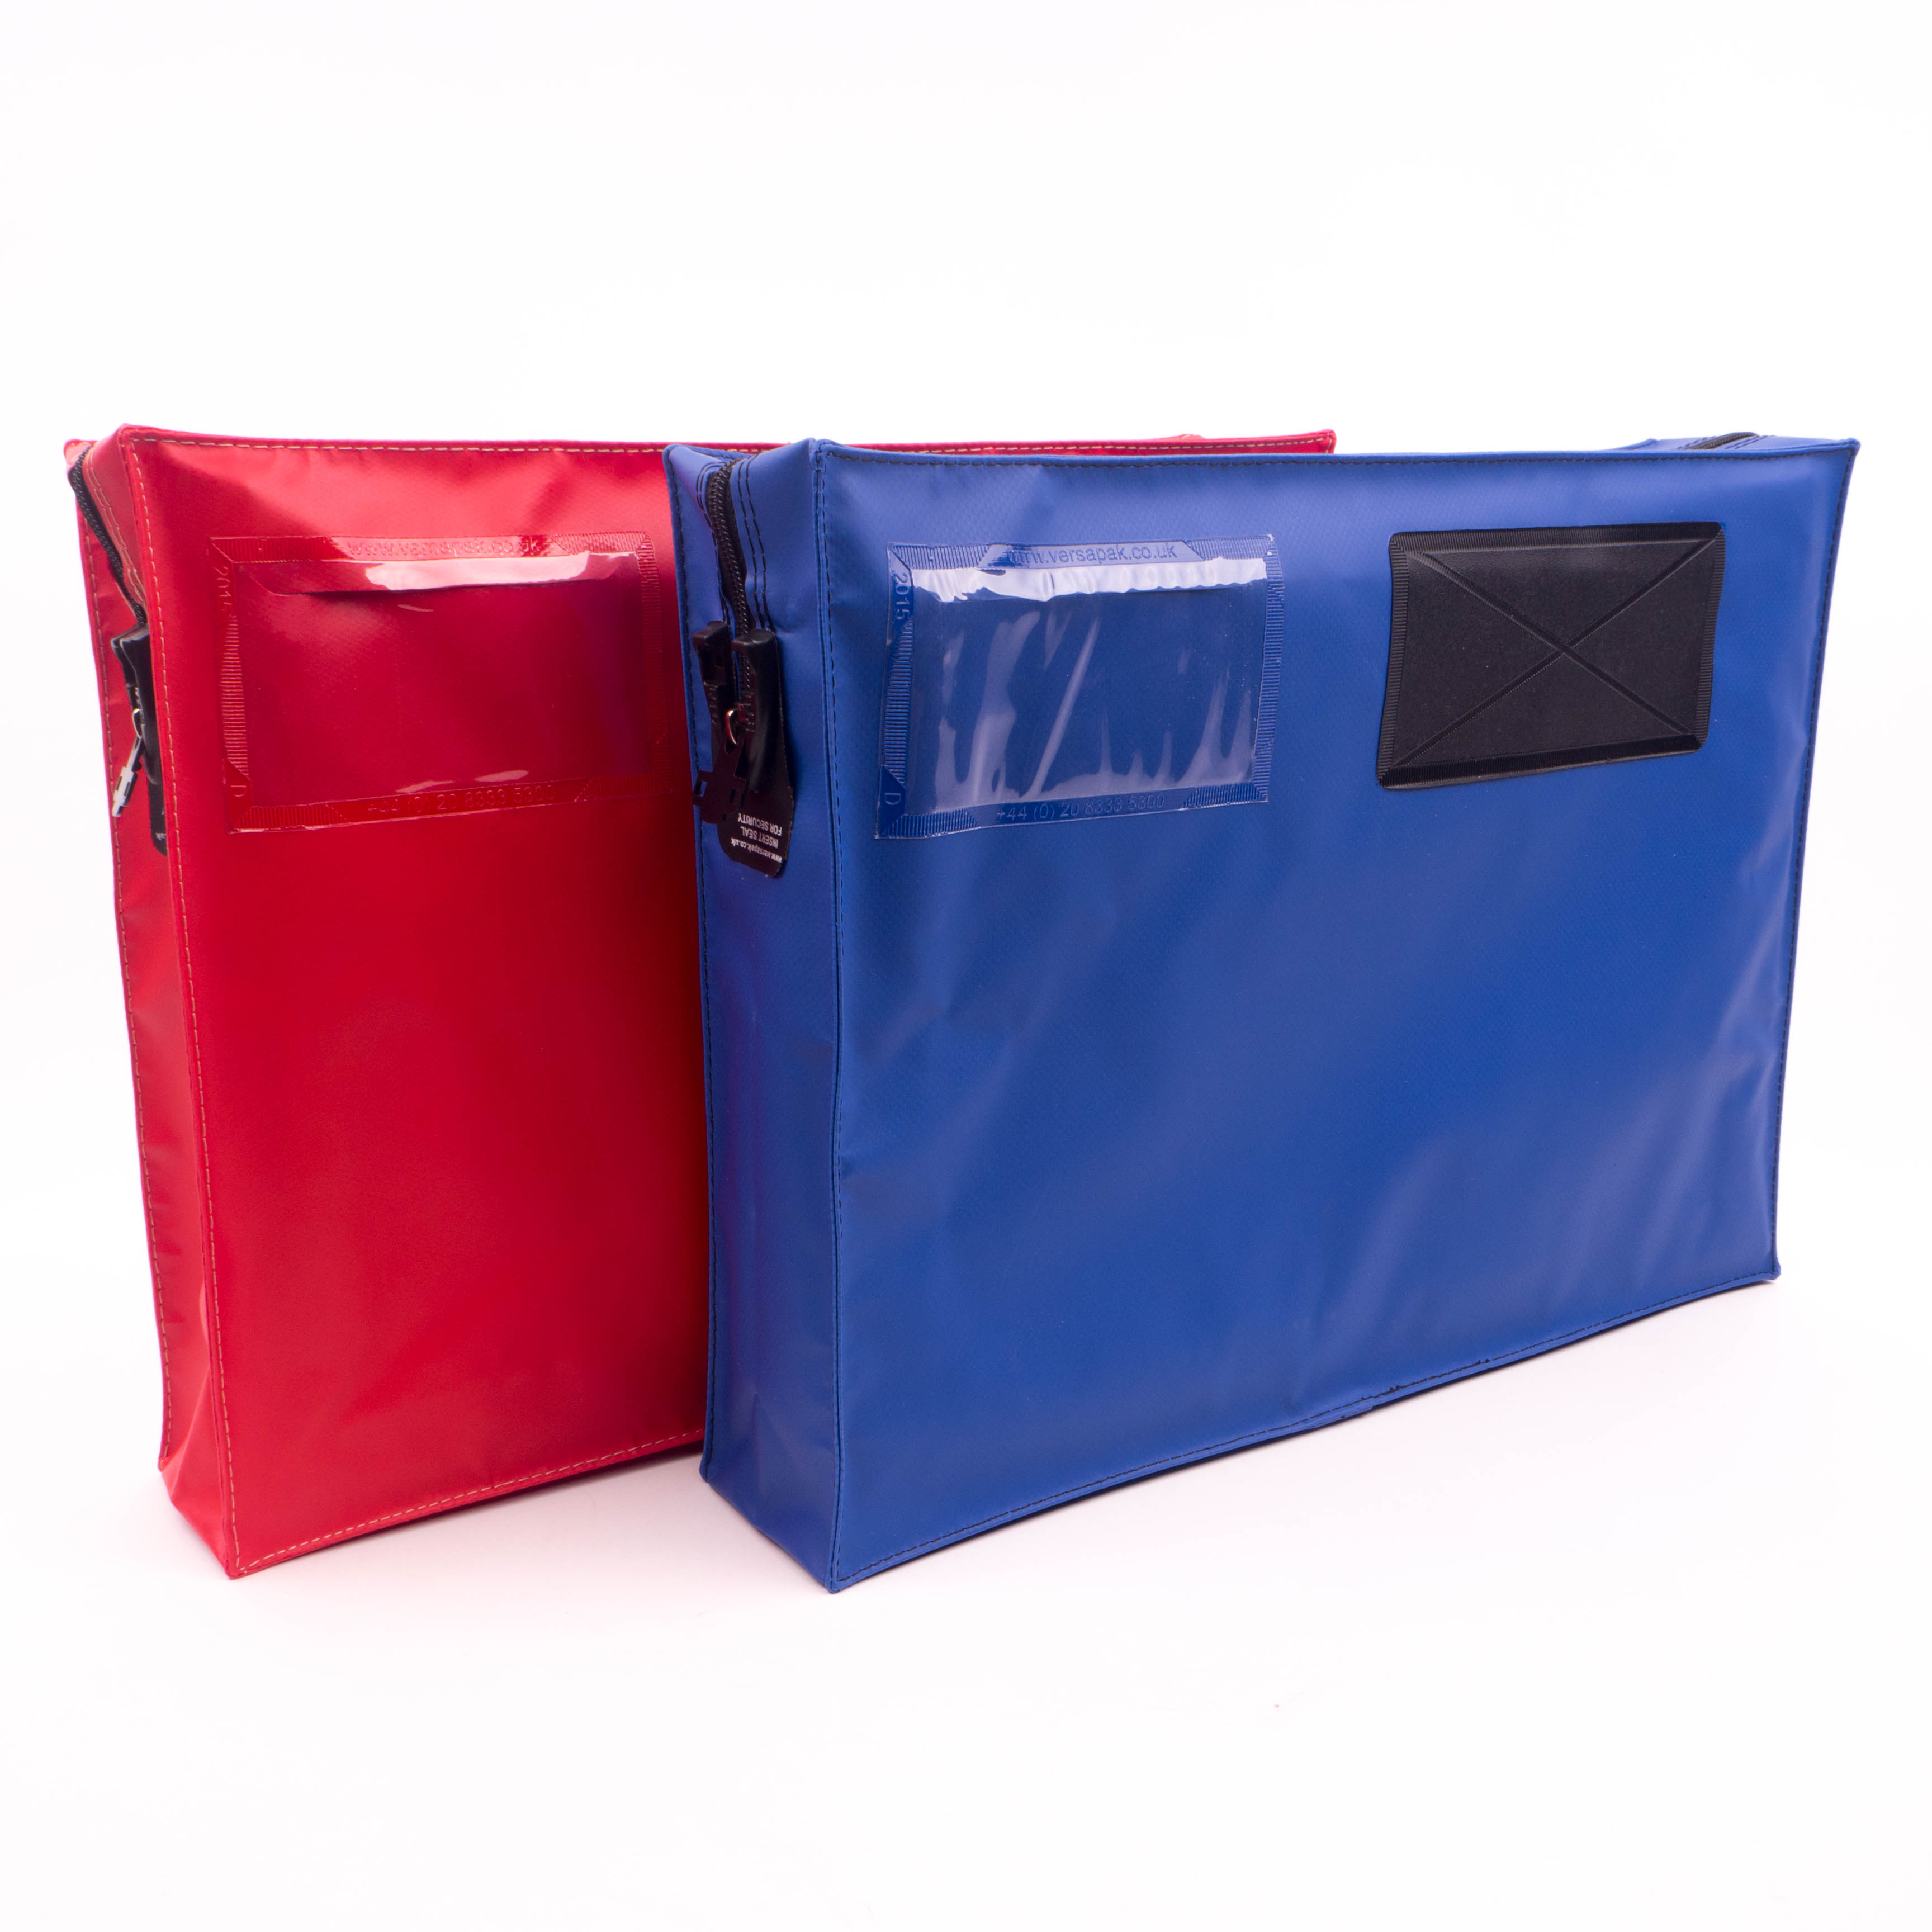 Mailpouches and Security bags